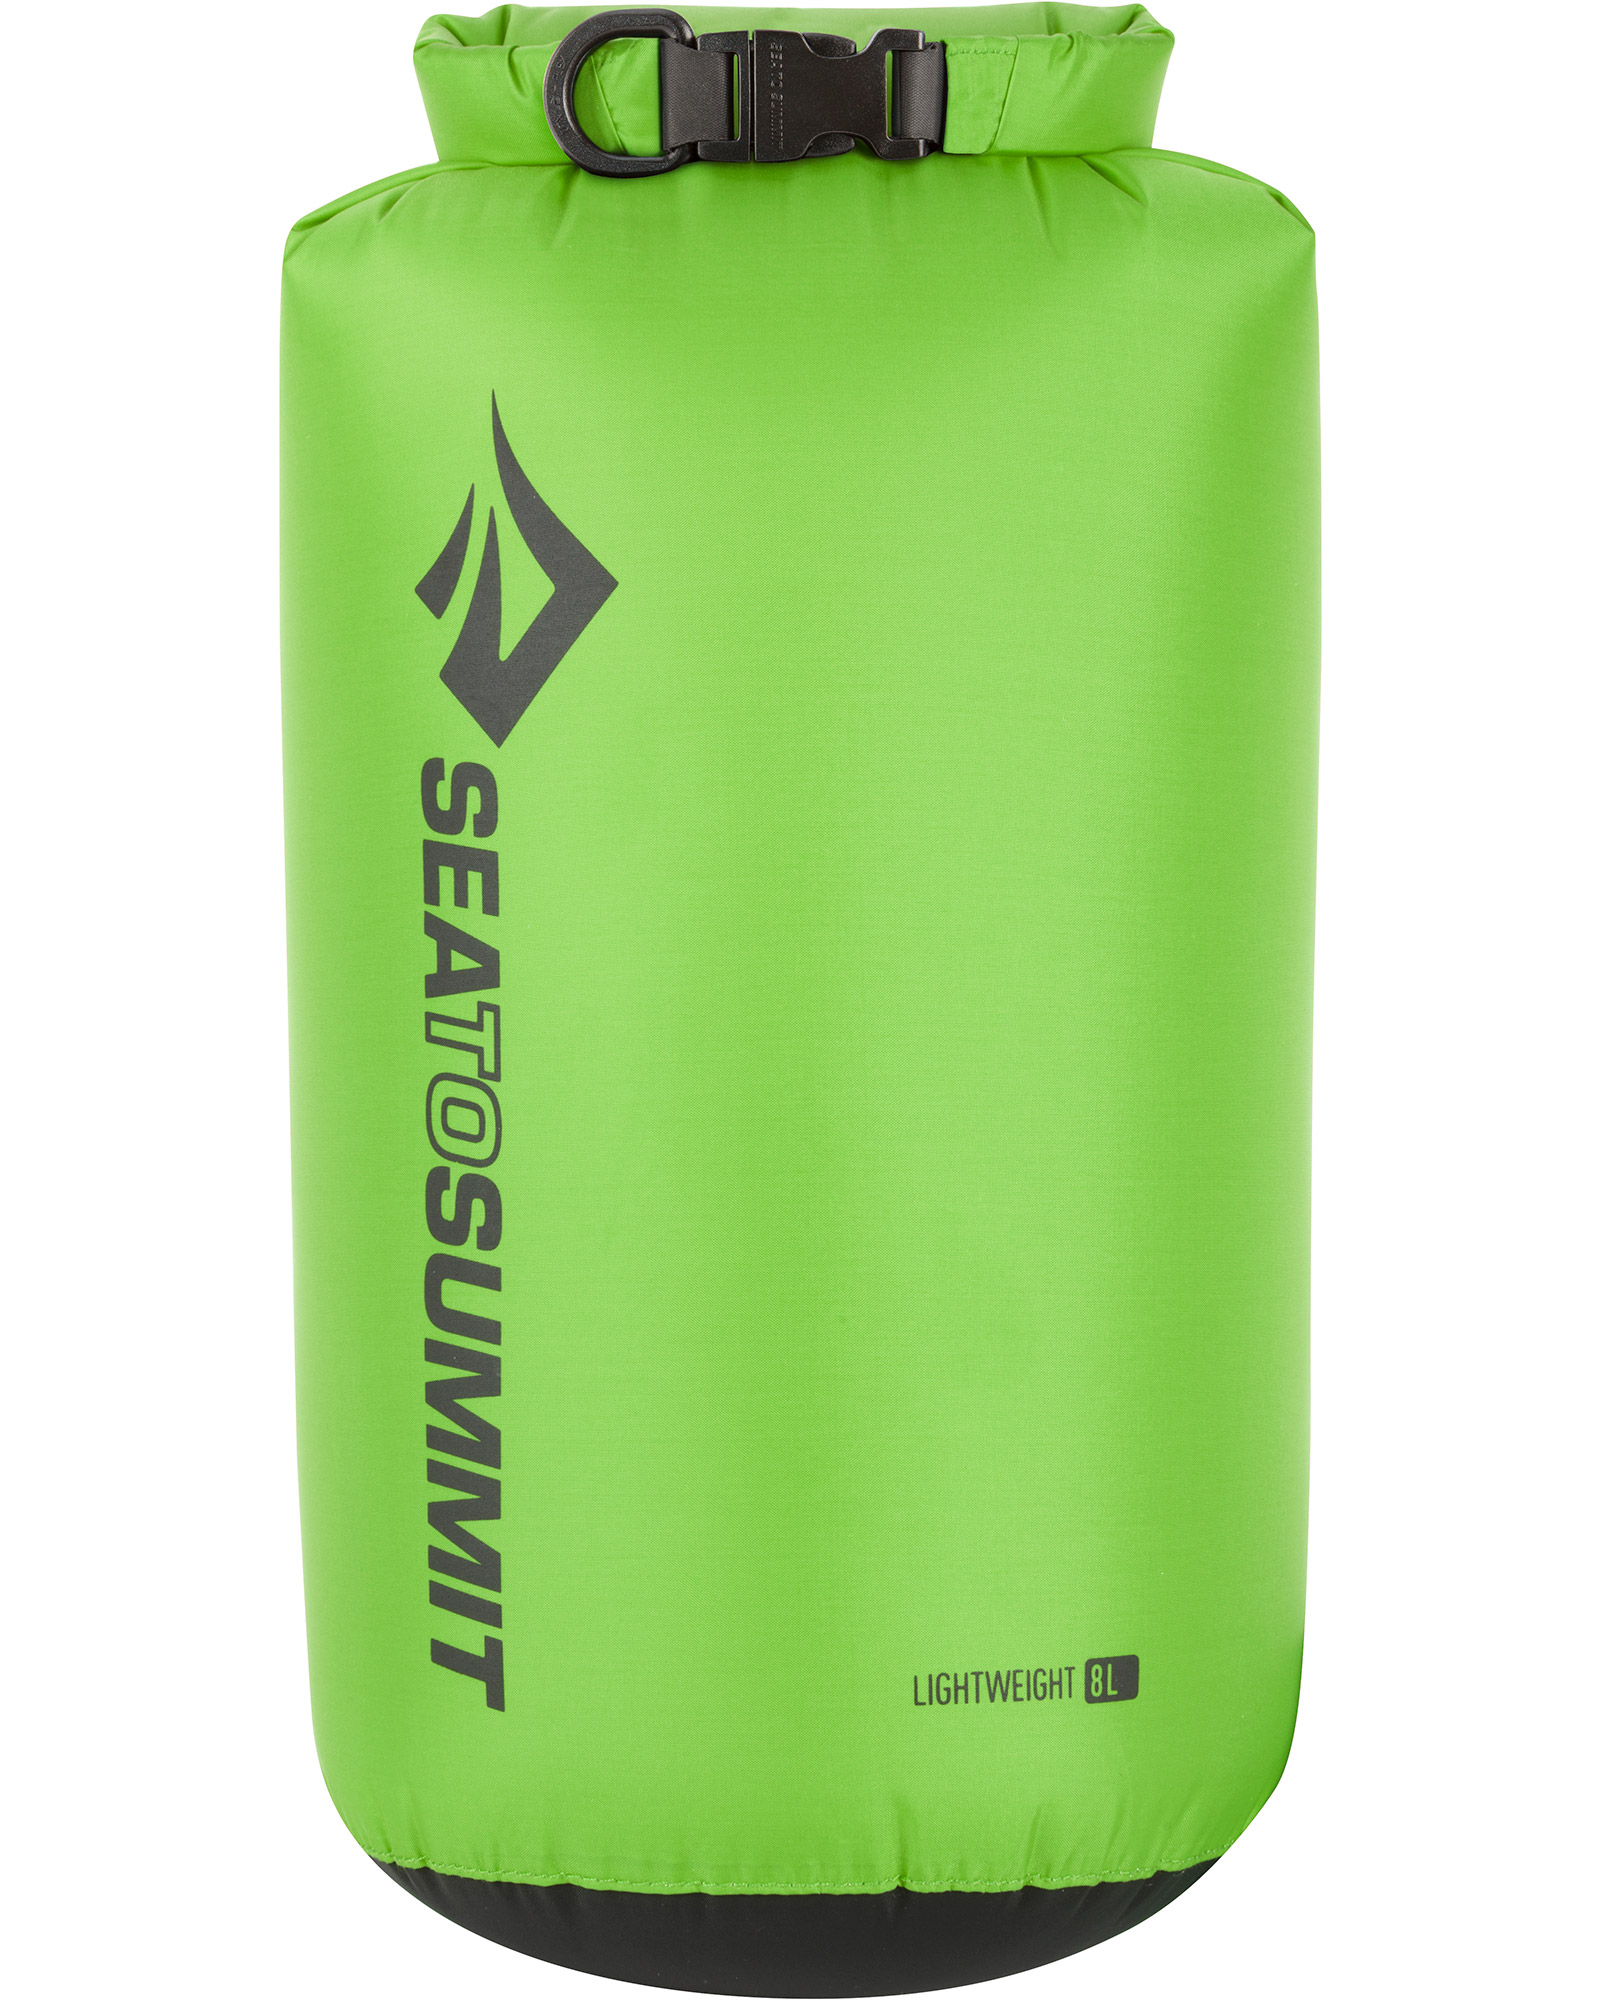 Product image of Sea to Summit Lightweight Dry Sack 8L